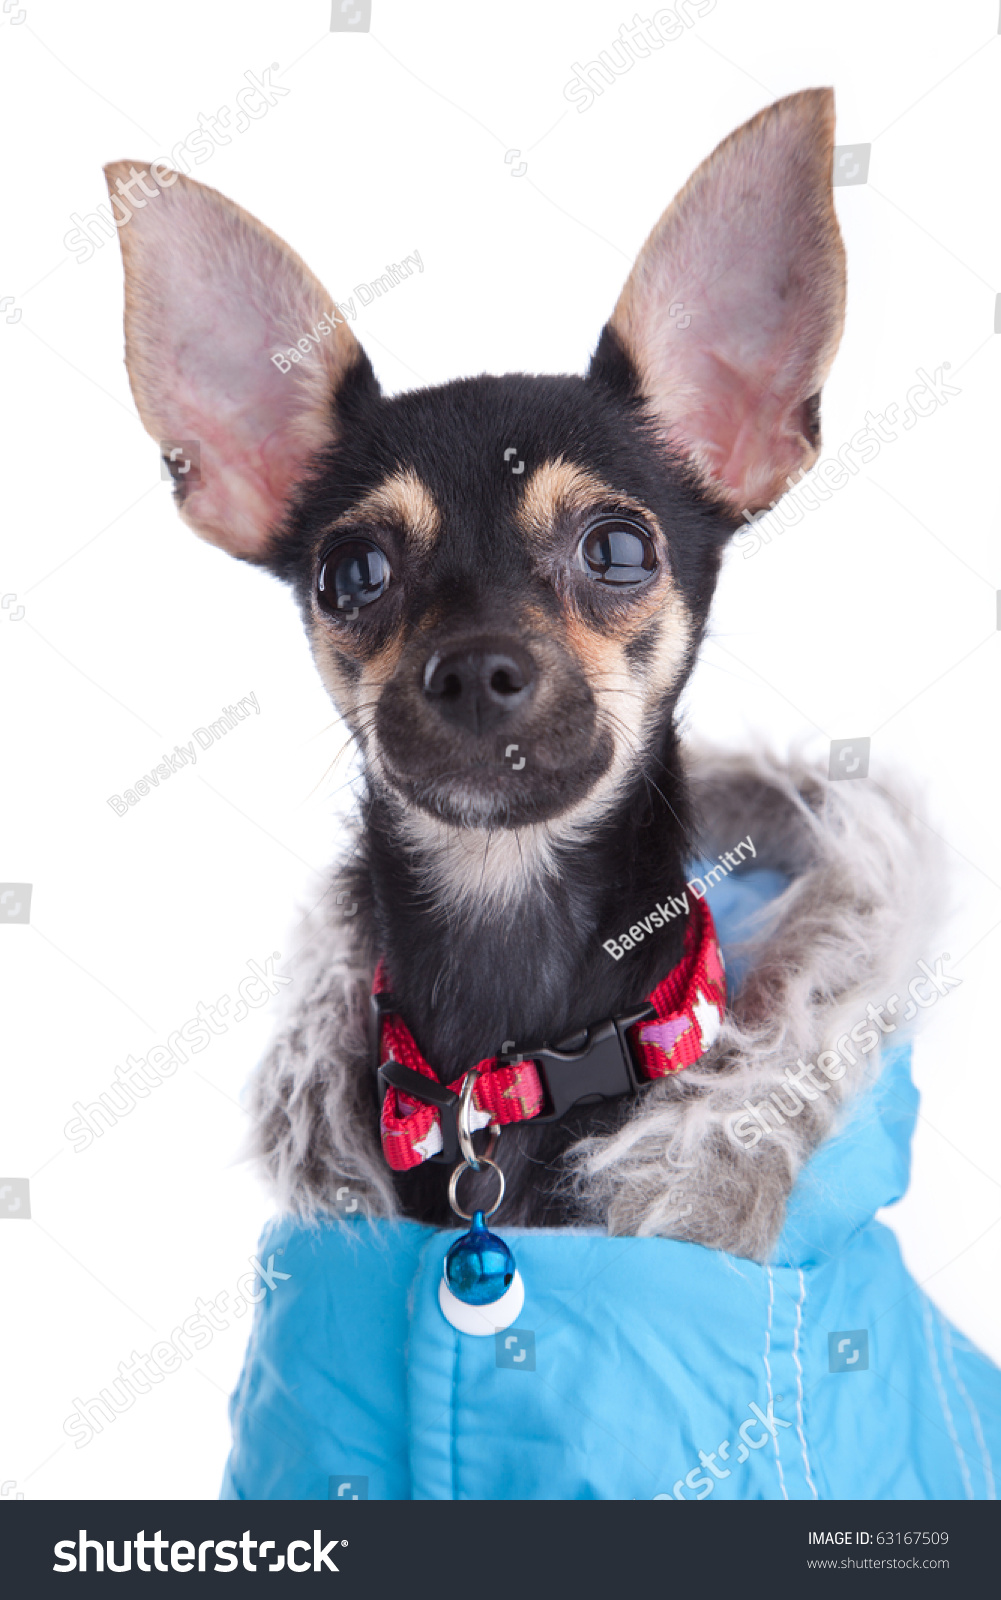 Toy Terrier Small Dogs : Small dog toy terrier jacket hood stock photo